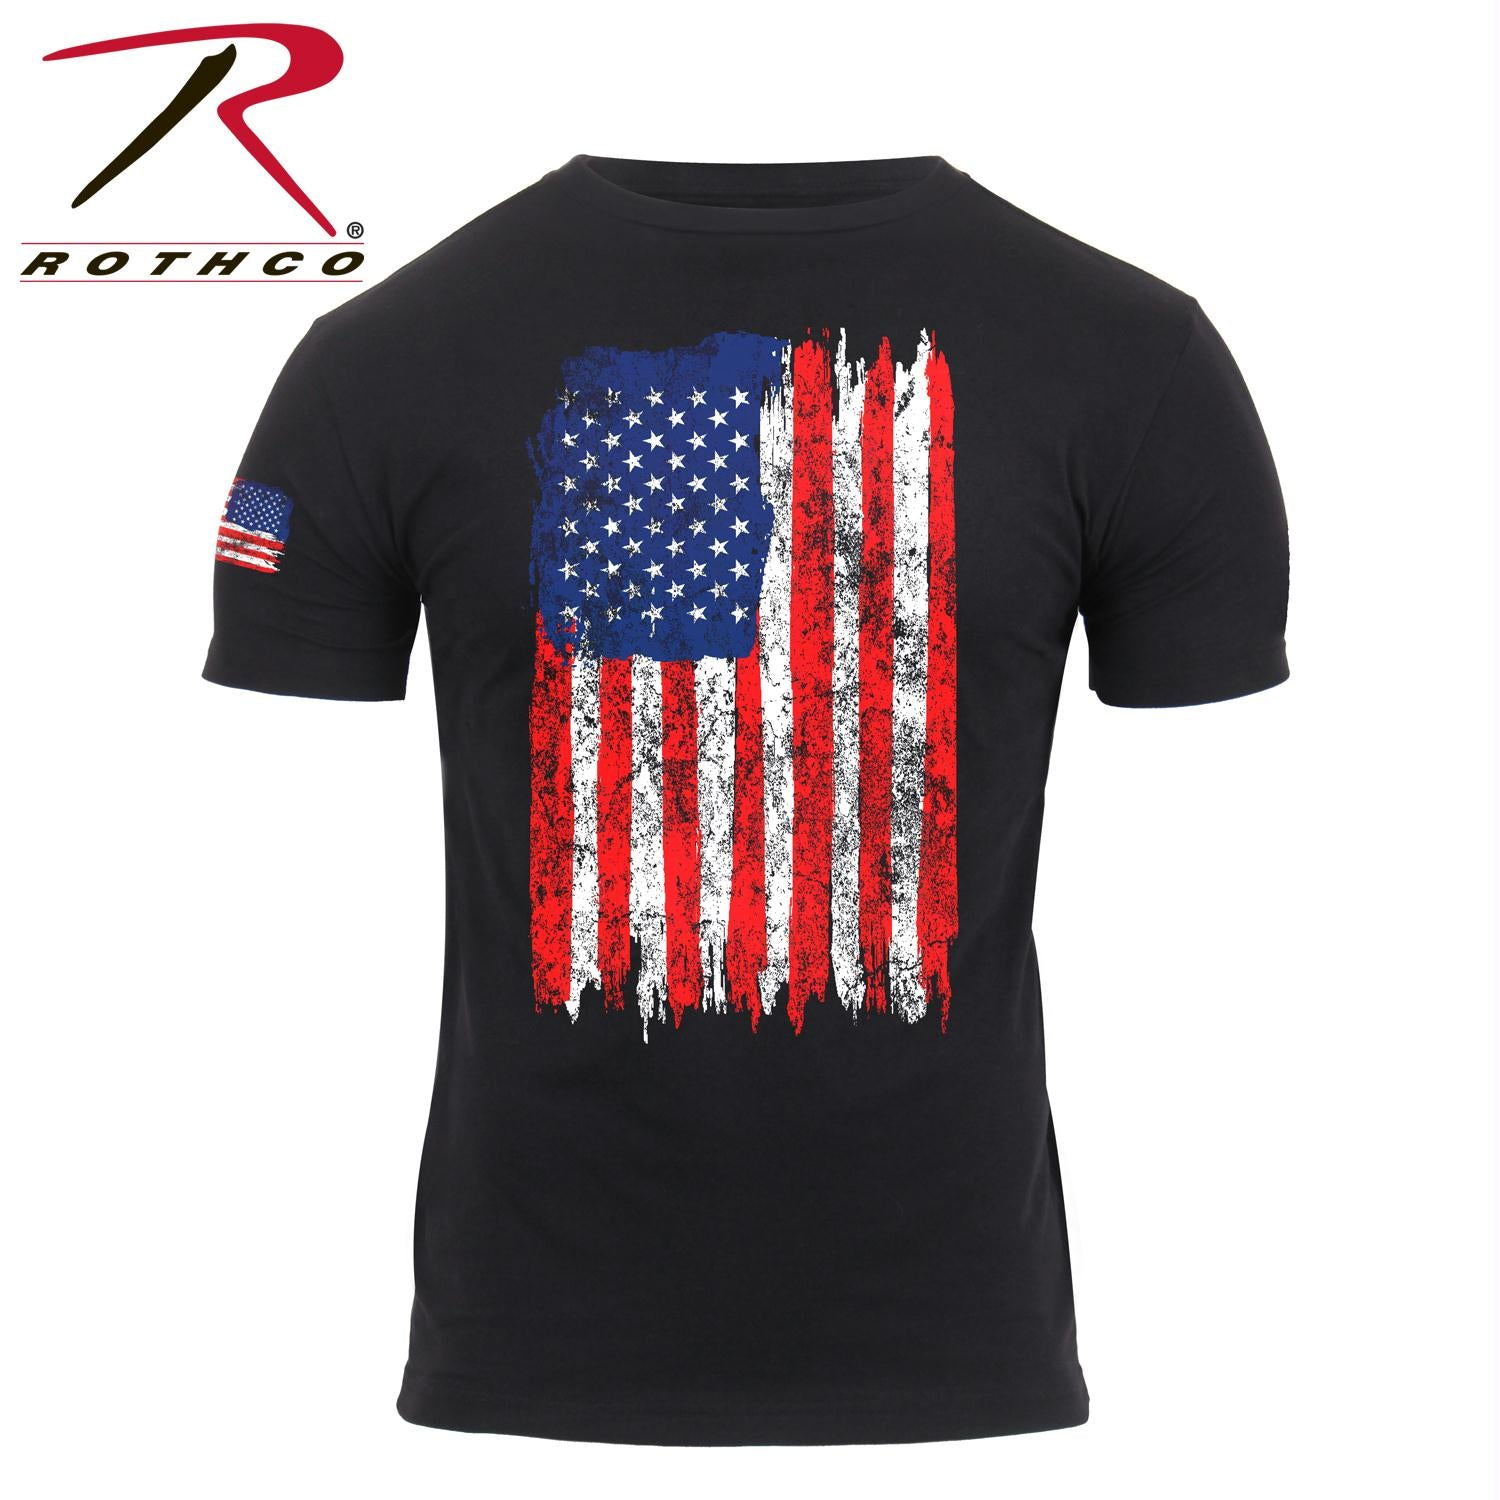 Rothco Distressed US Flag T-Shirt - Red / White / Blue / 3XL